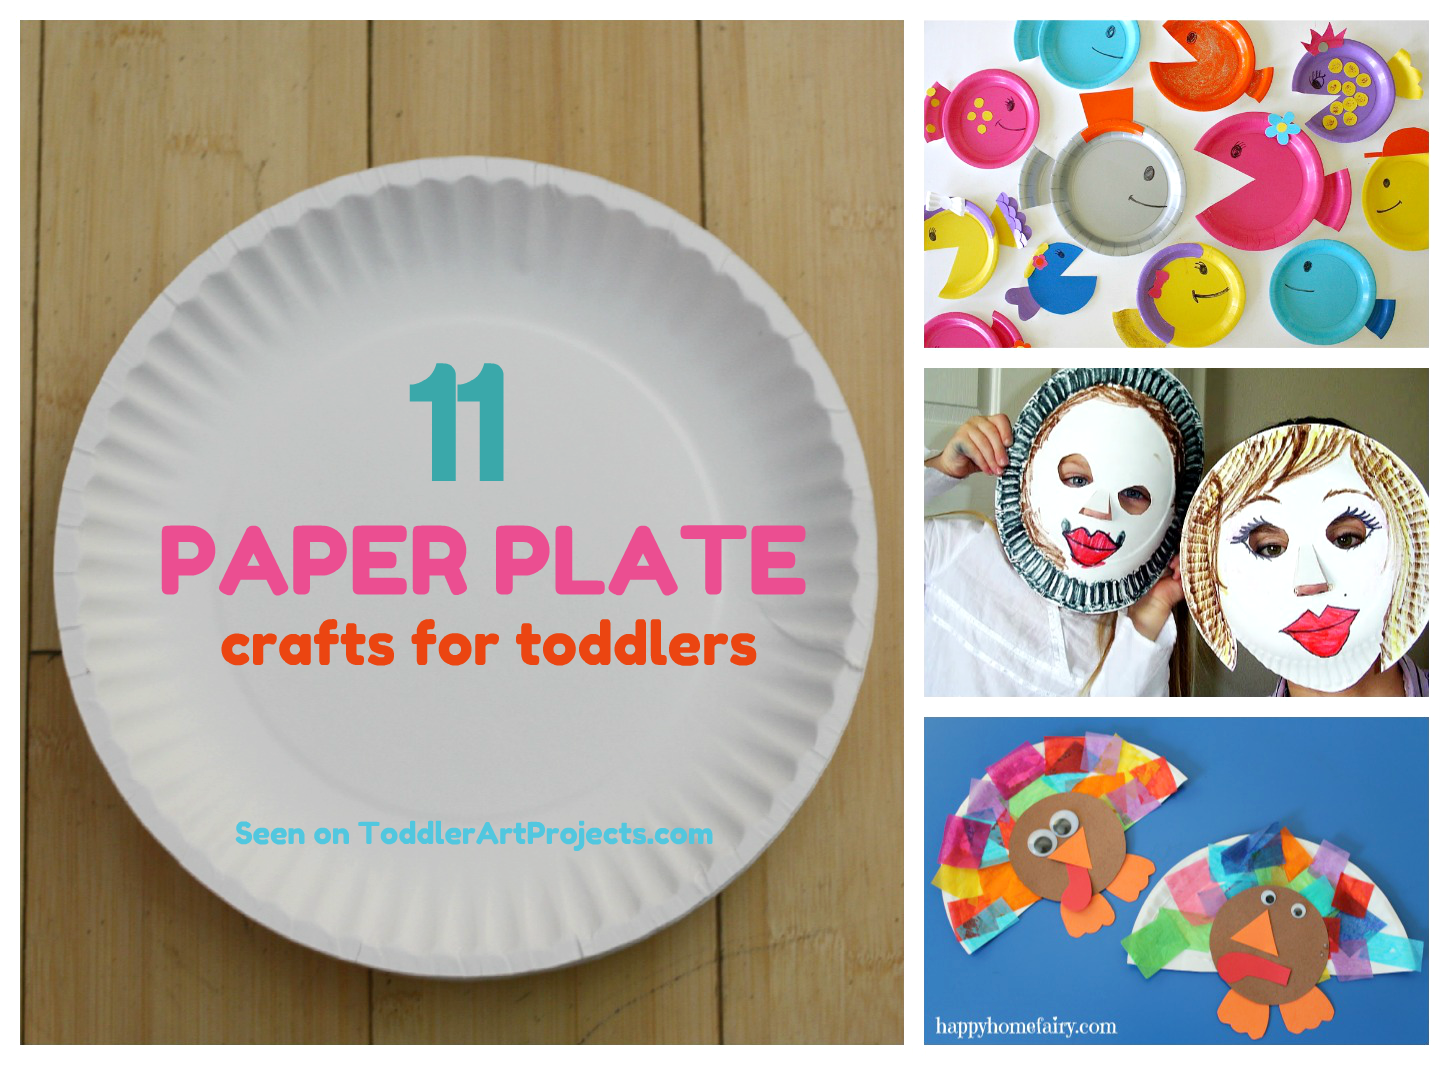 Fun Crafts to Make Paper | 11 Fun Paper Plate Crafts for Toddlers | Toddler Art  sc 1 st  Pinterest & Fun Crafts to Make Paper | 11 Fun Paper Plate Crafts for Toddlers ...